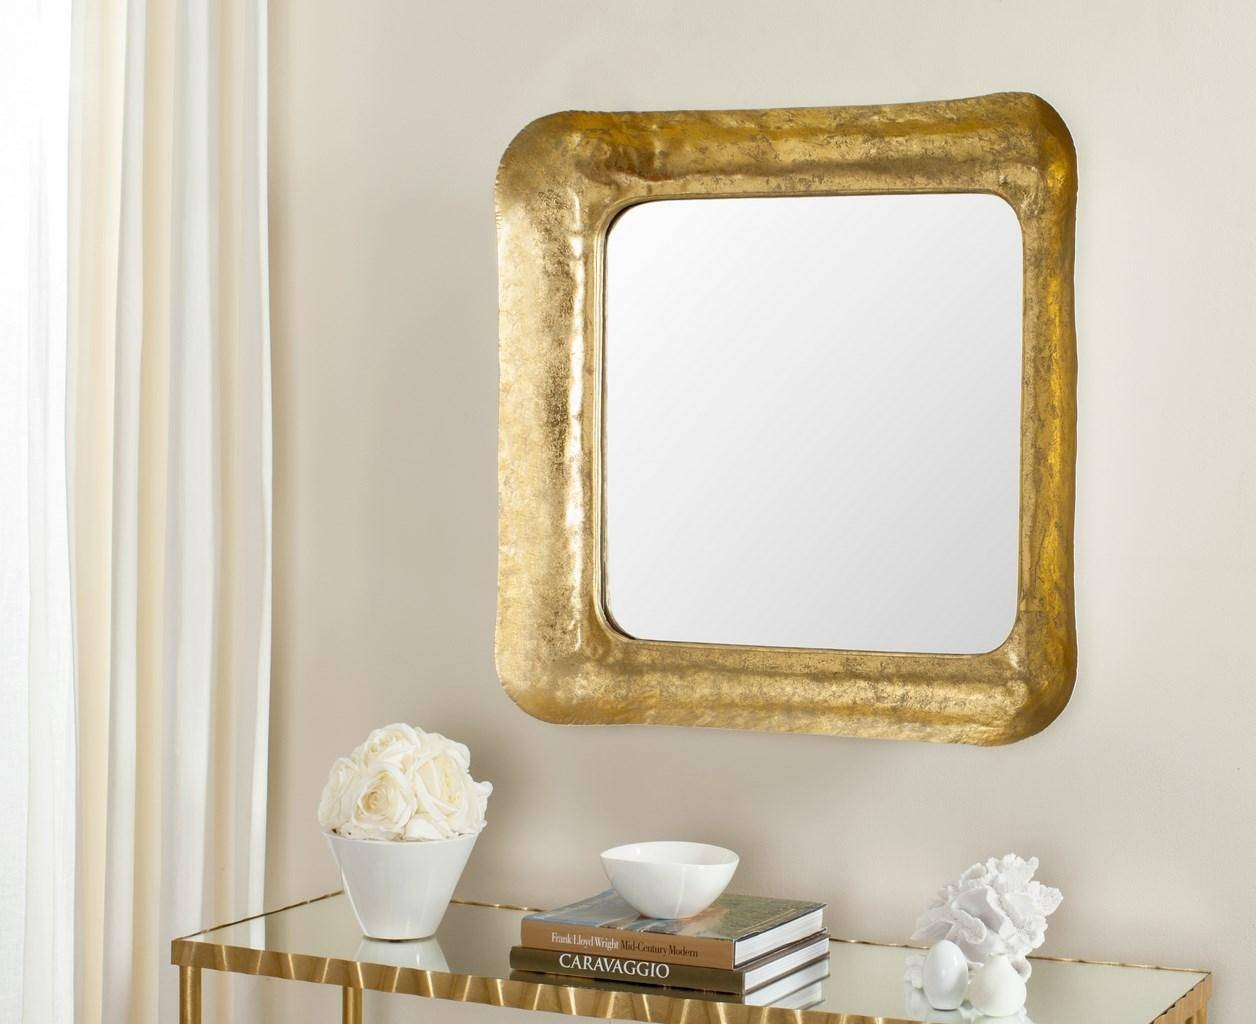 Mir4086A Mirrors - Safavieh pertaining to Square Gold Mirrors (Image 19 of 25)